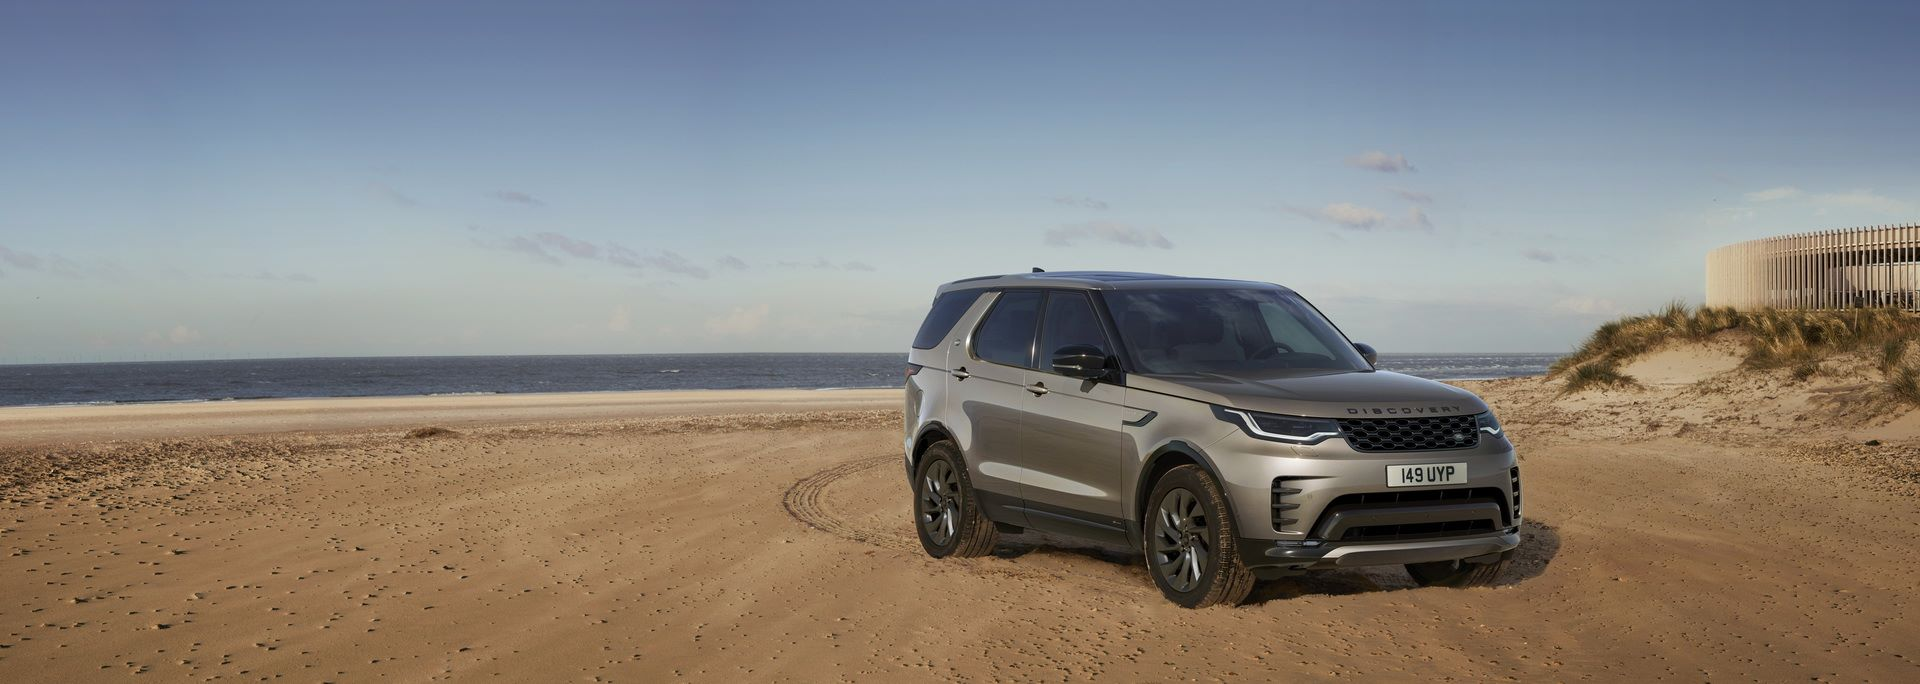 2021-Land-Rover-Discovery-66-1